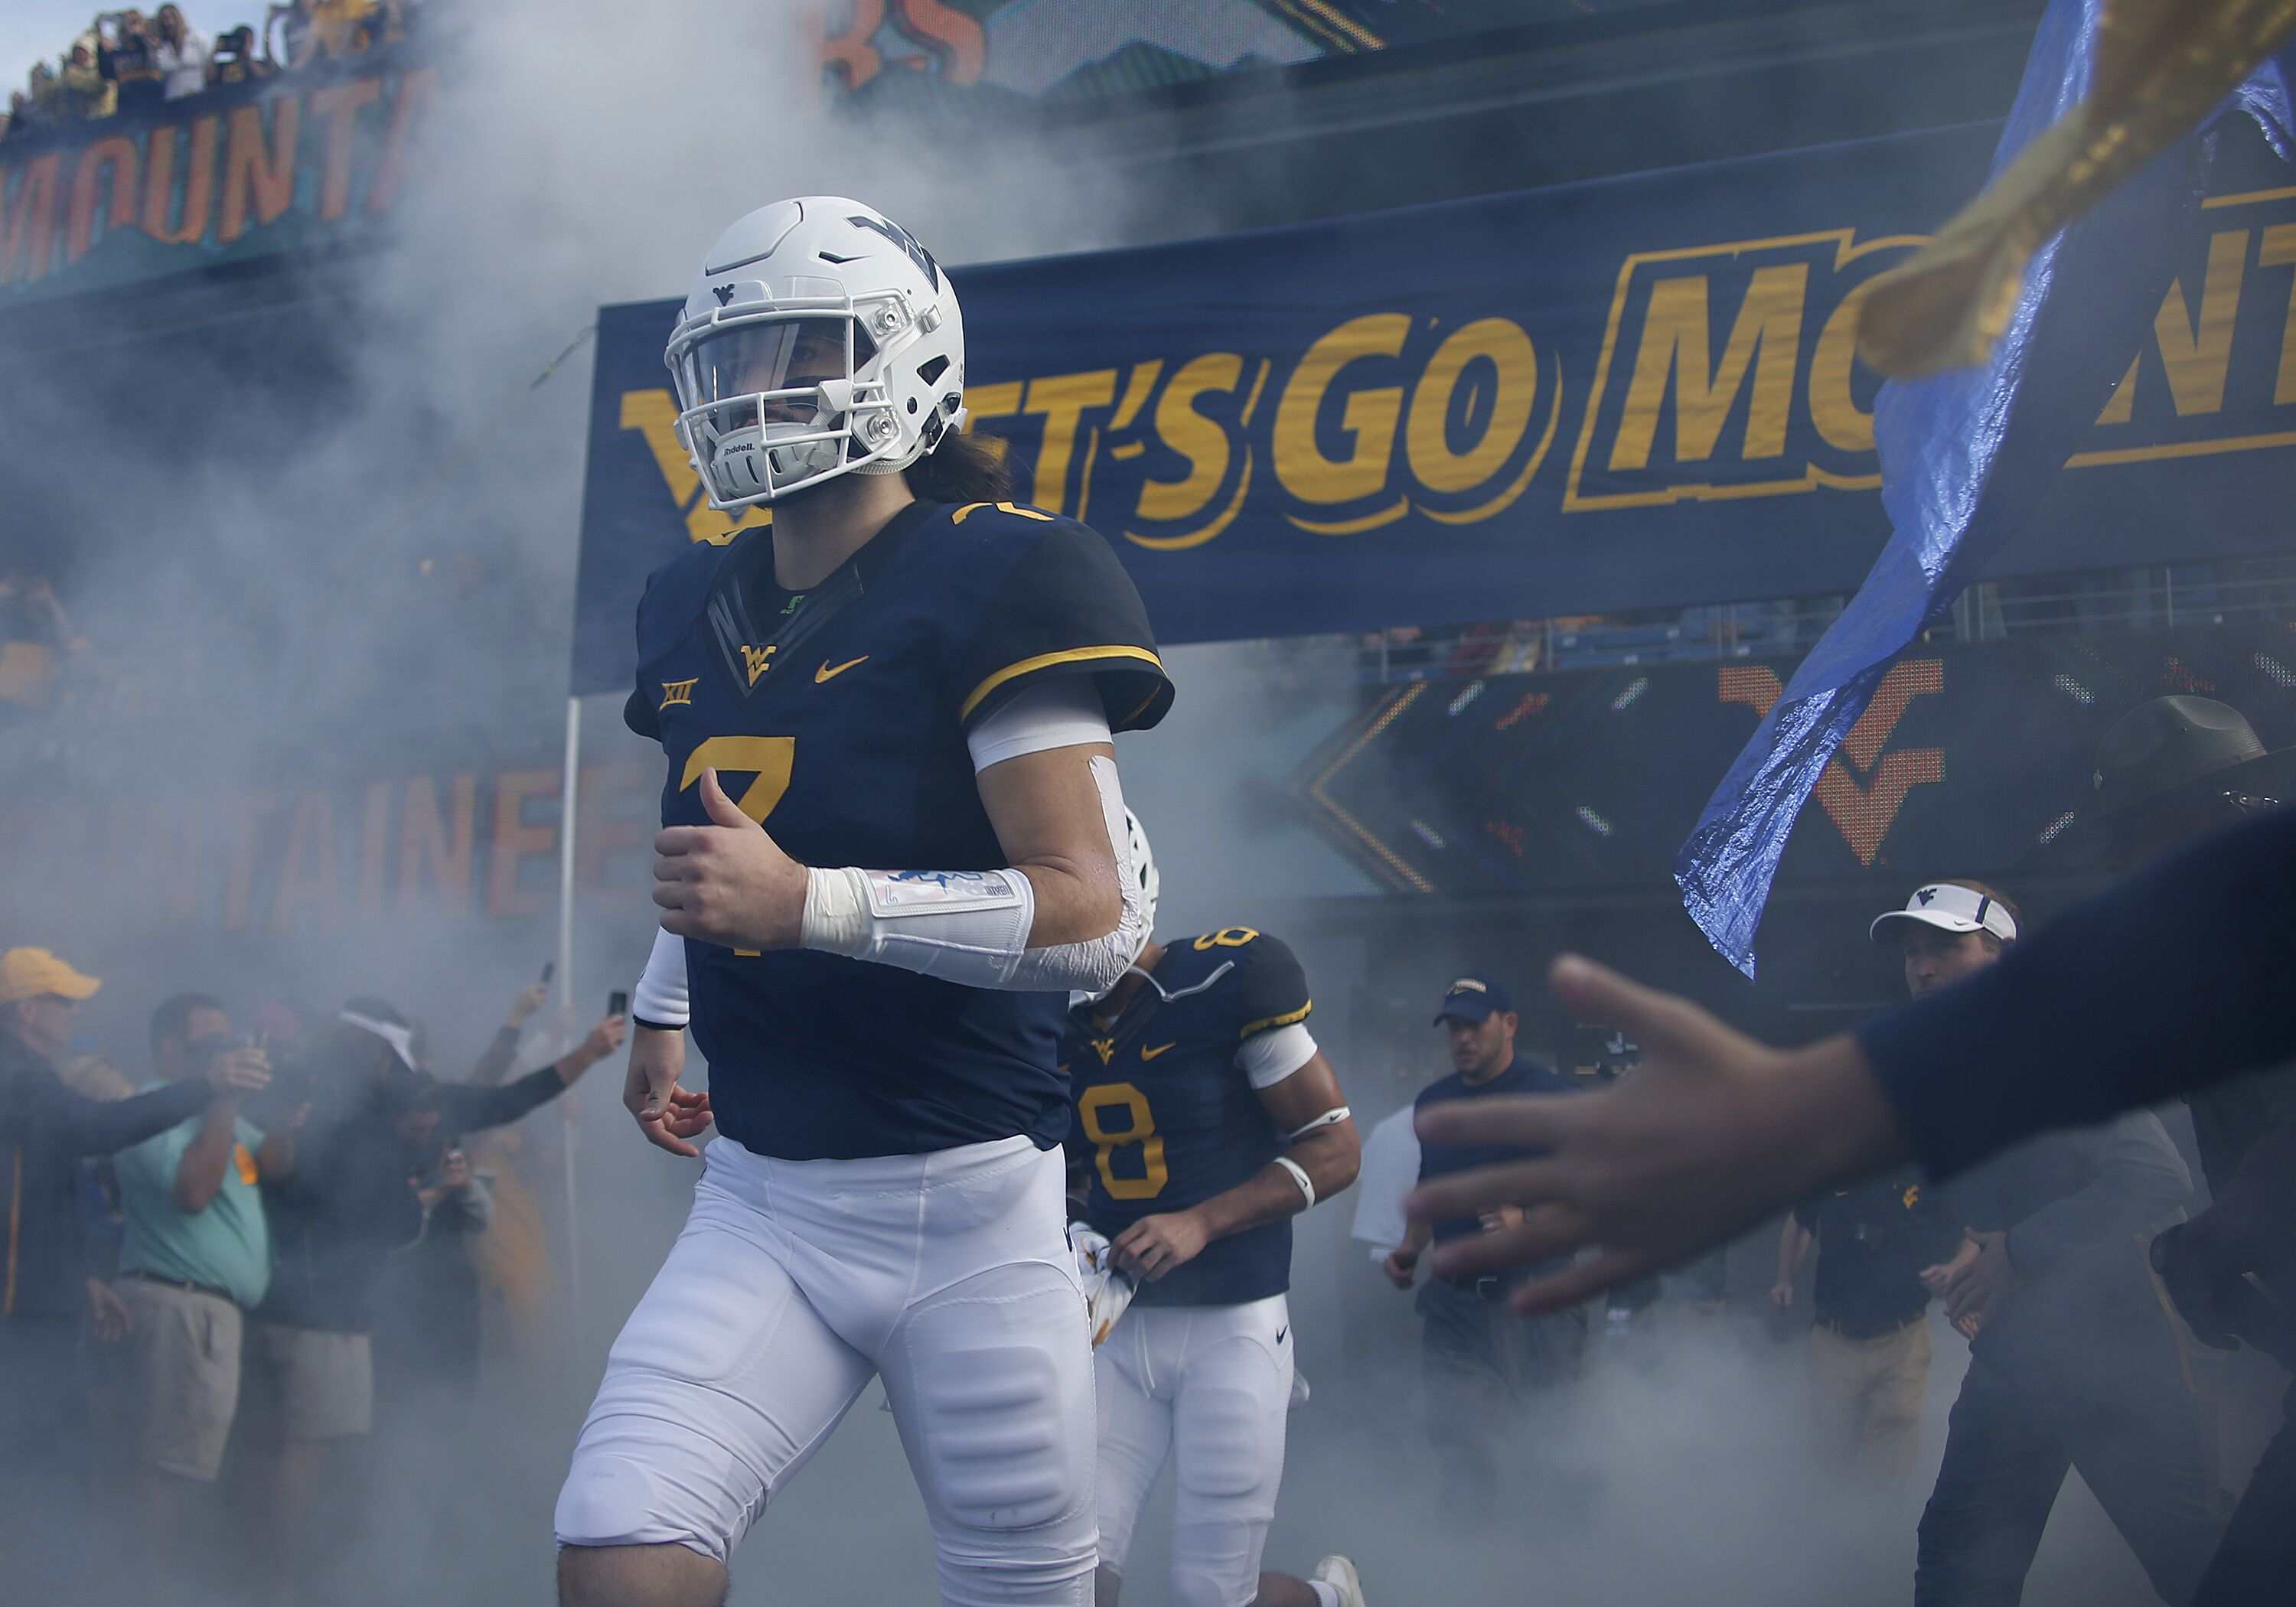 super popular 163dc 276be Tennessee vs. West Virginia: Preview, predictions, TV ...